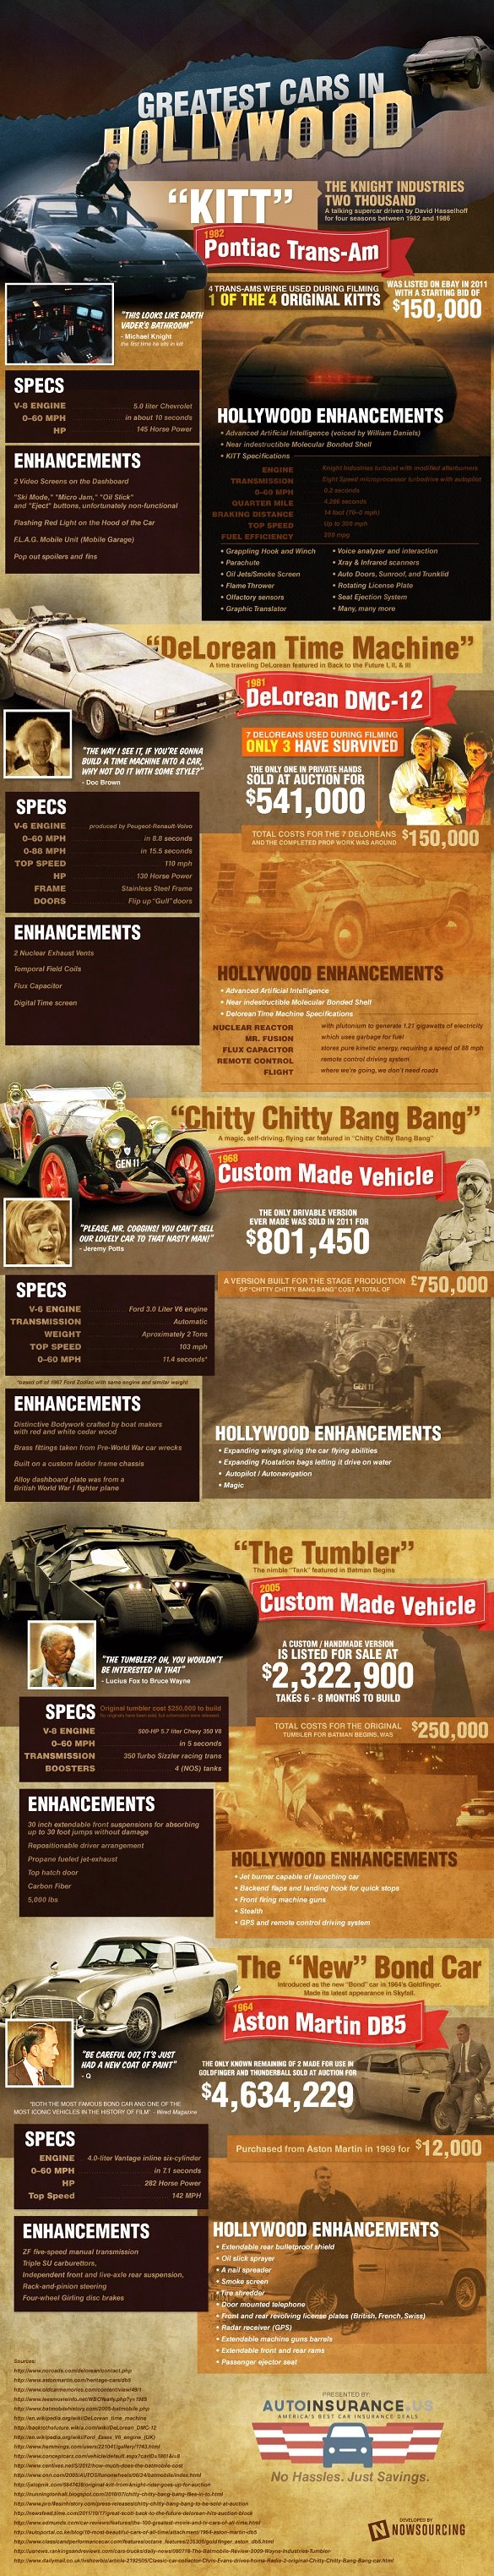 The Greatest Cars in Hollywood #infographic